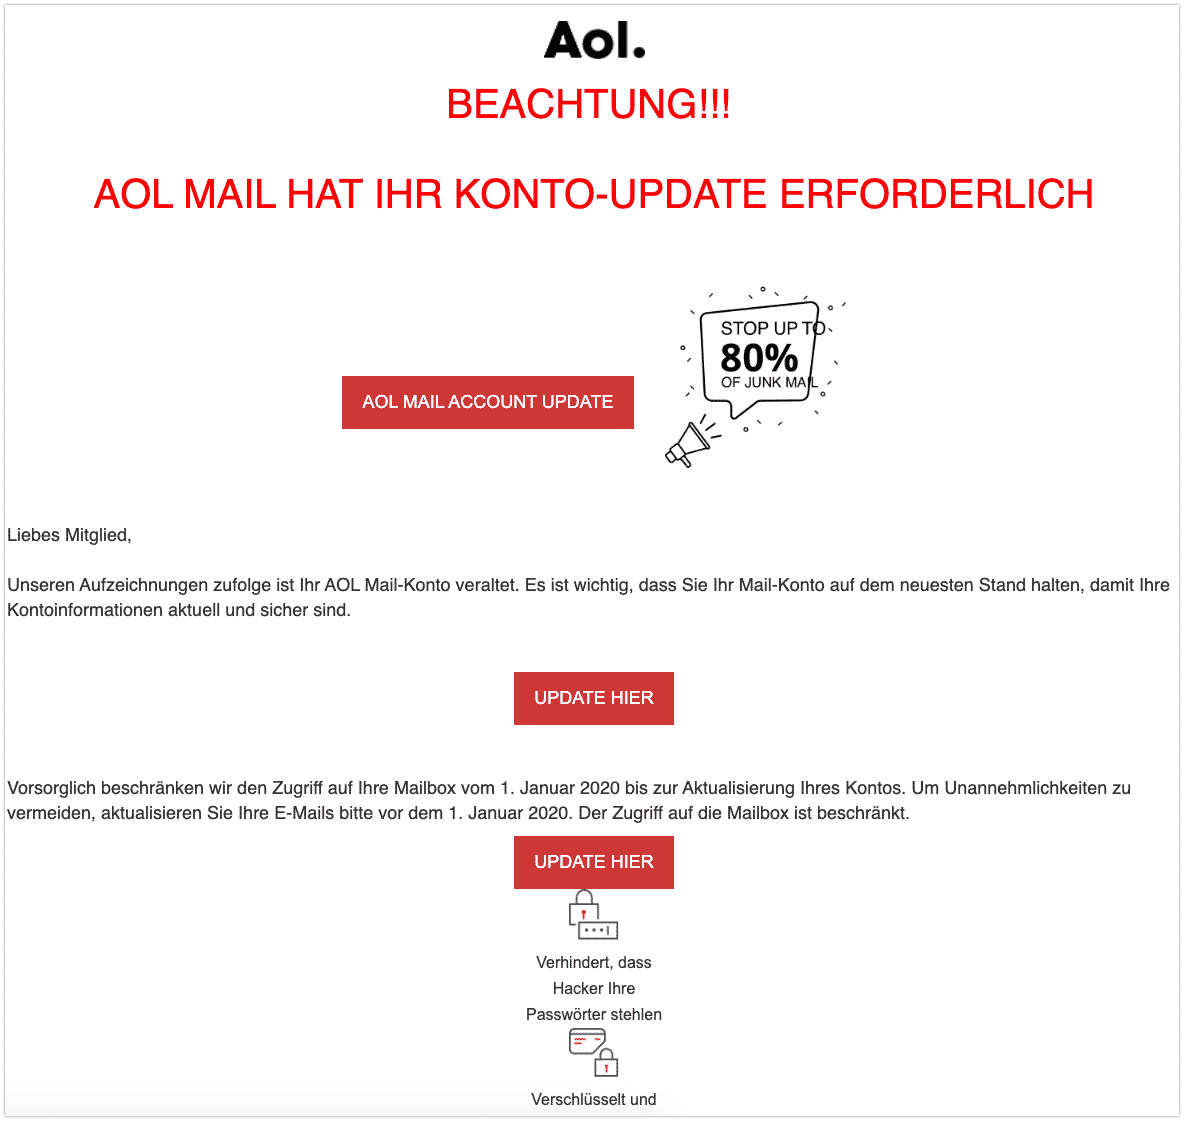 2019-12-23 AOL Phishing